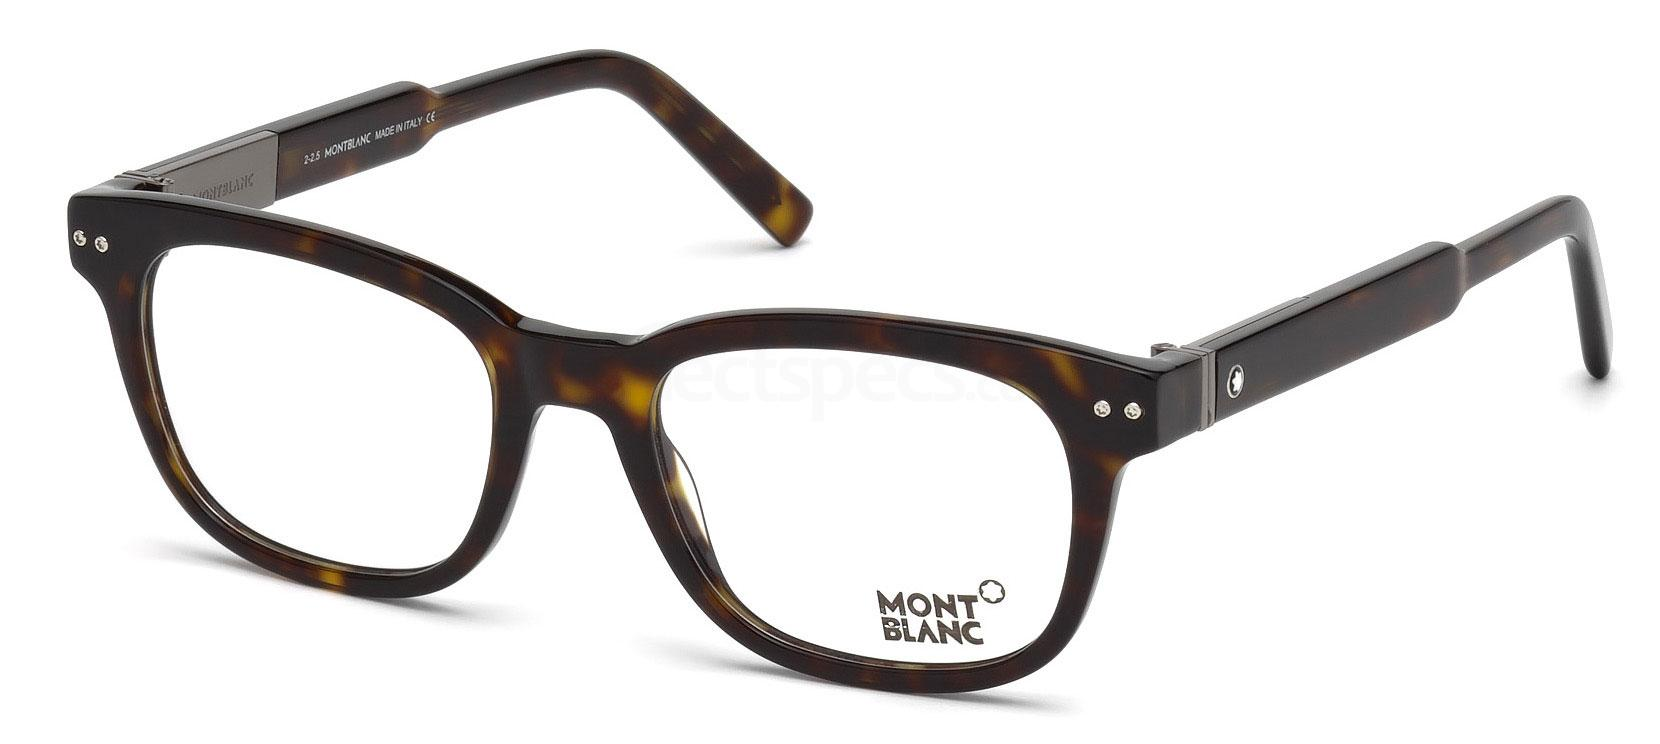 052 MB0628 Glasses, Mont Blanc